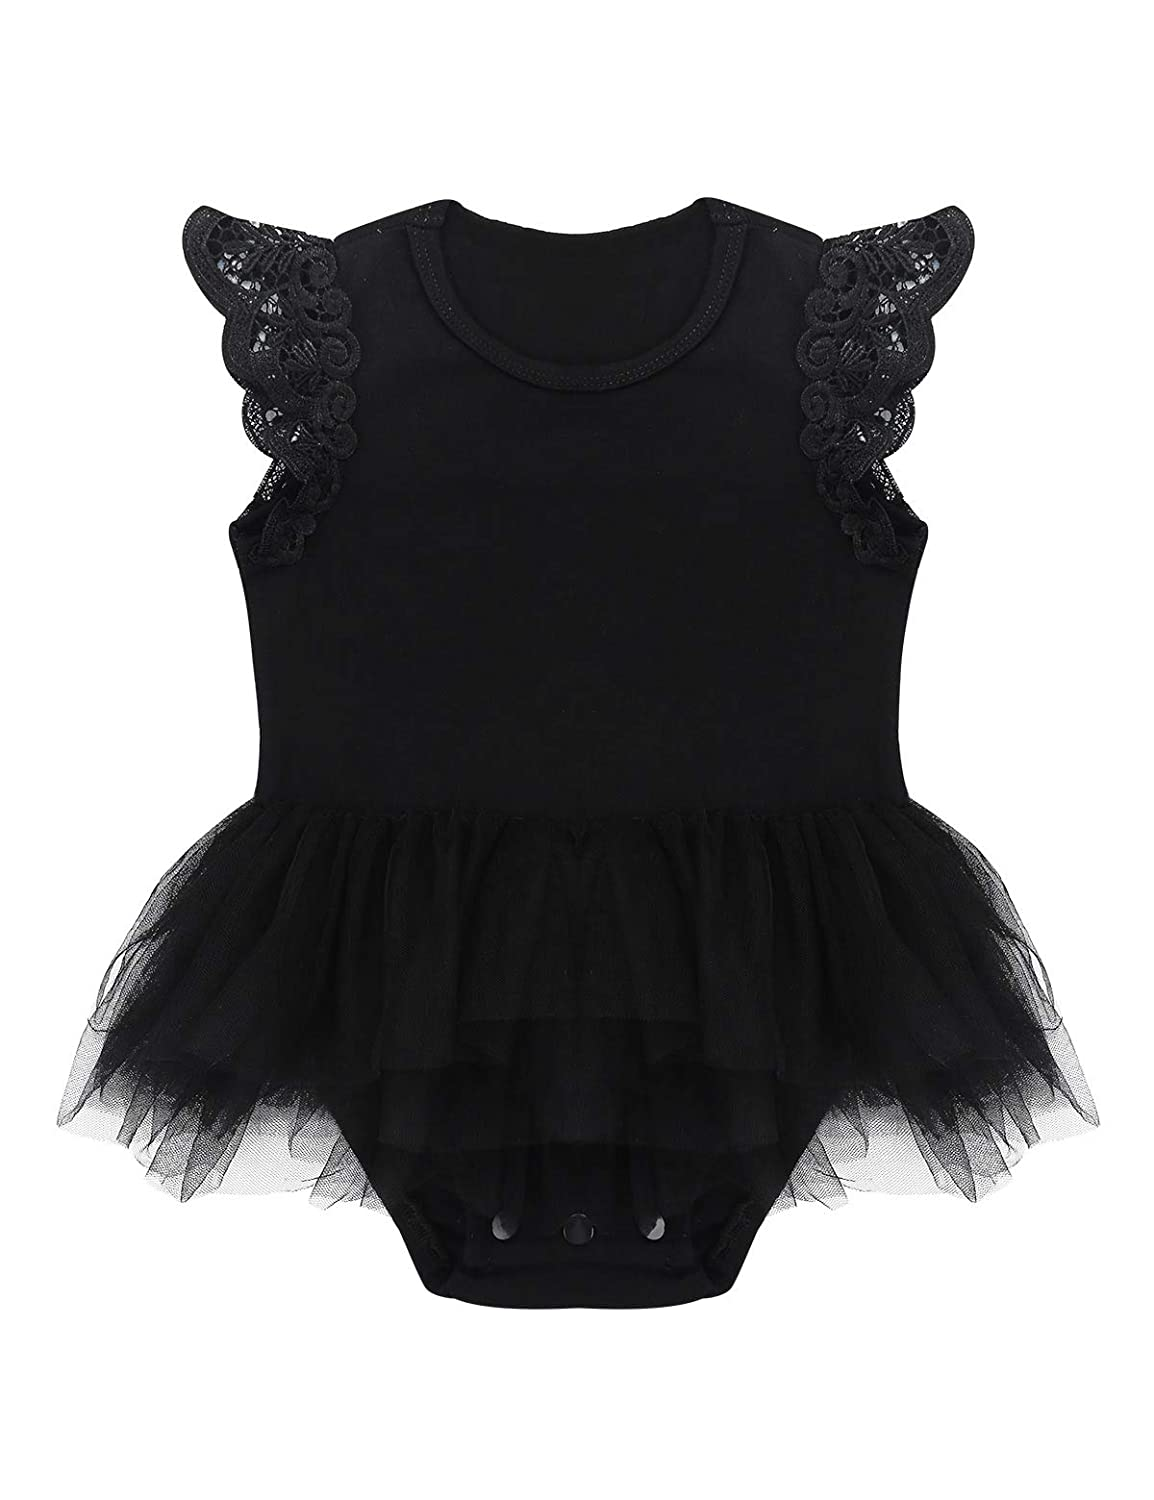 YiZYiF Infant Baby Girl Kids Lace Sleeves Romper Bodysuit Ruffle Tutu Summer Playwear Clothes